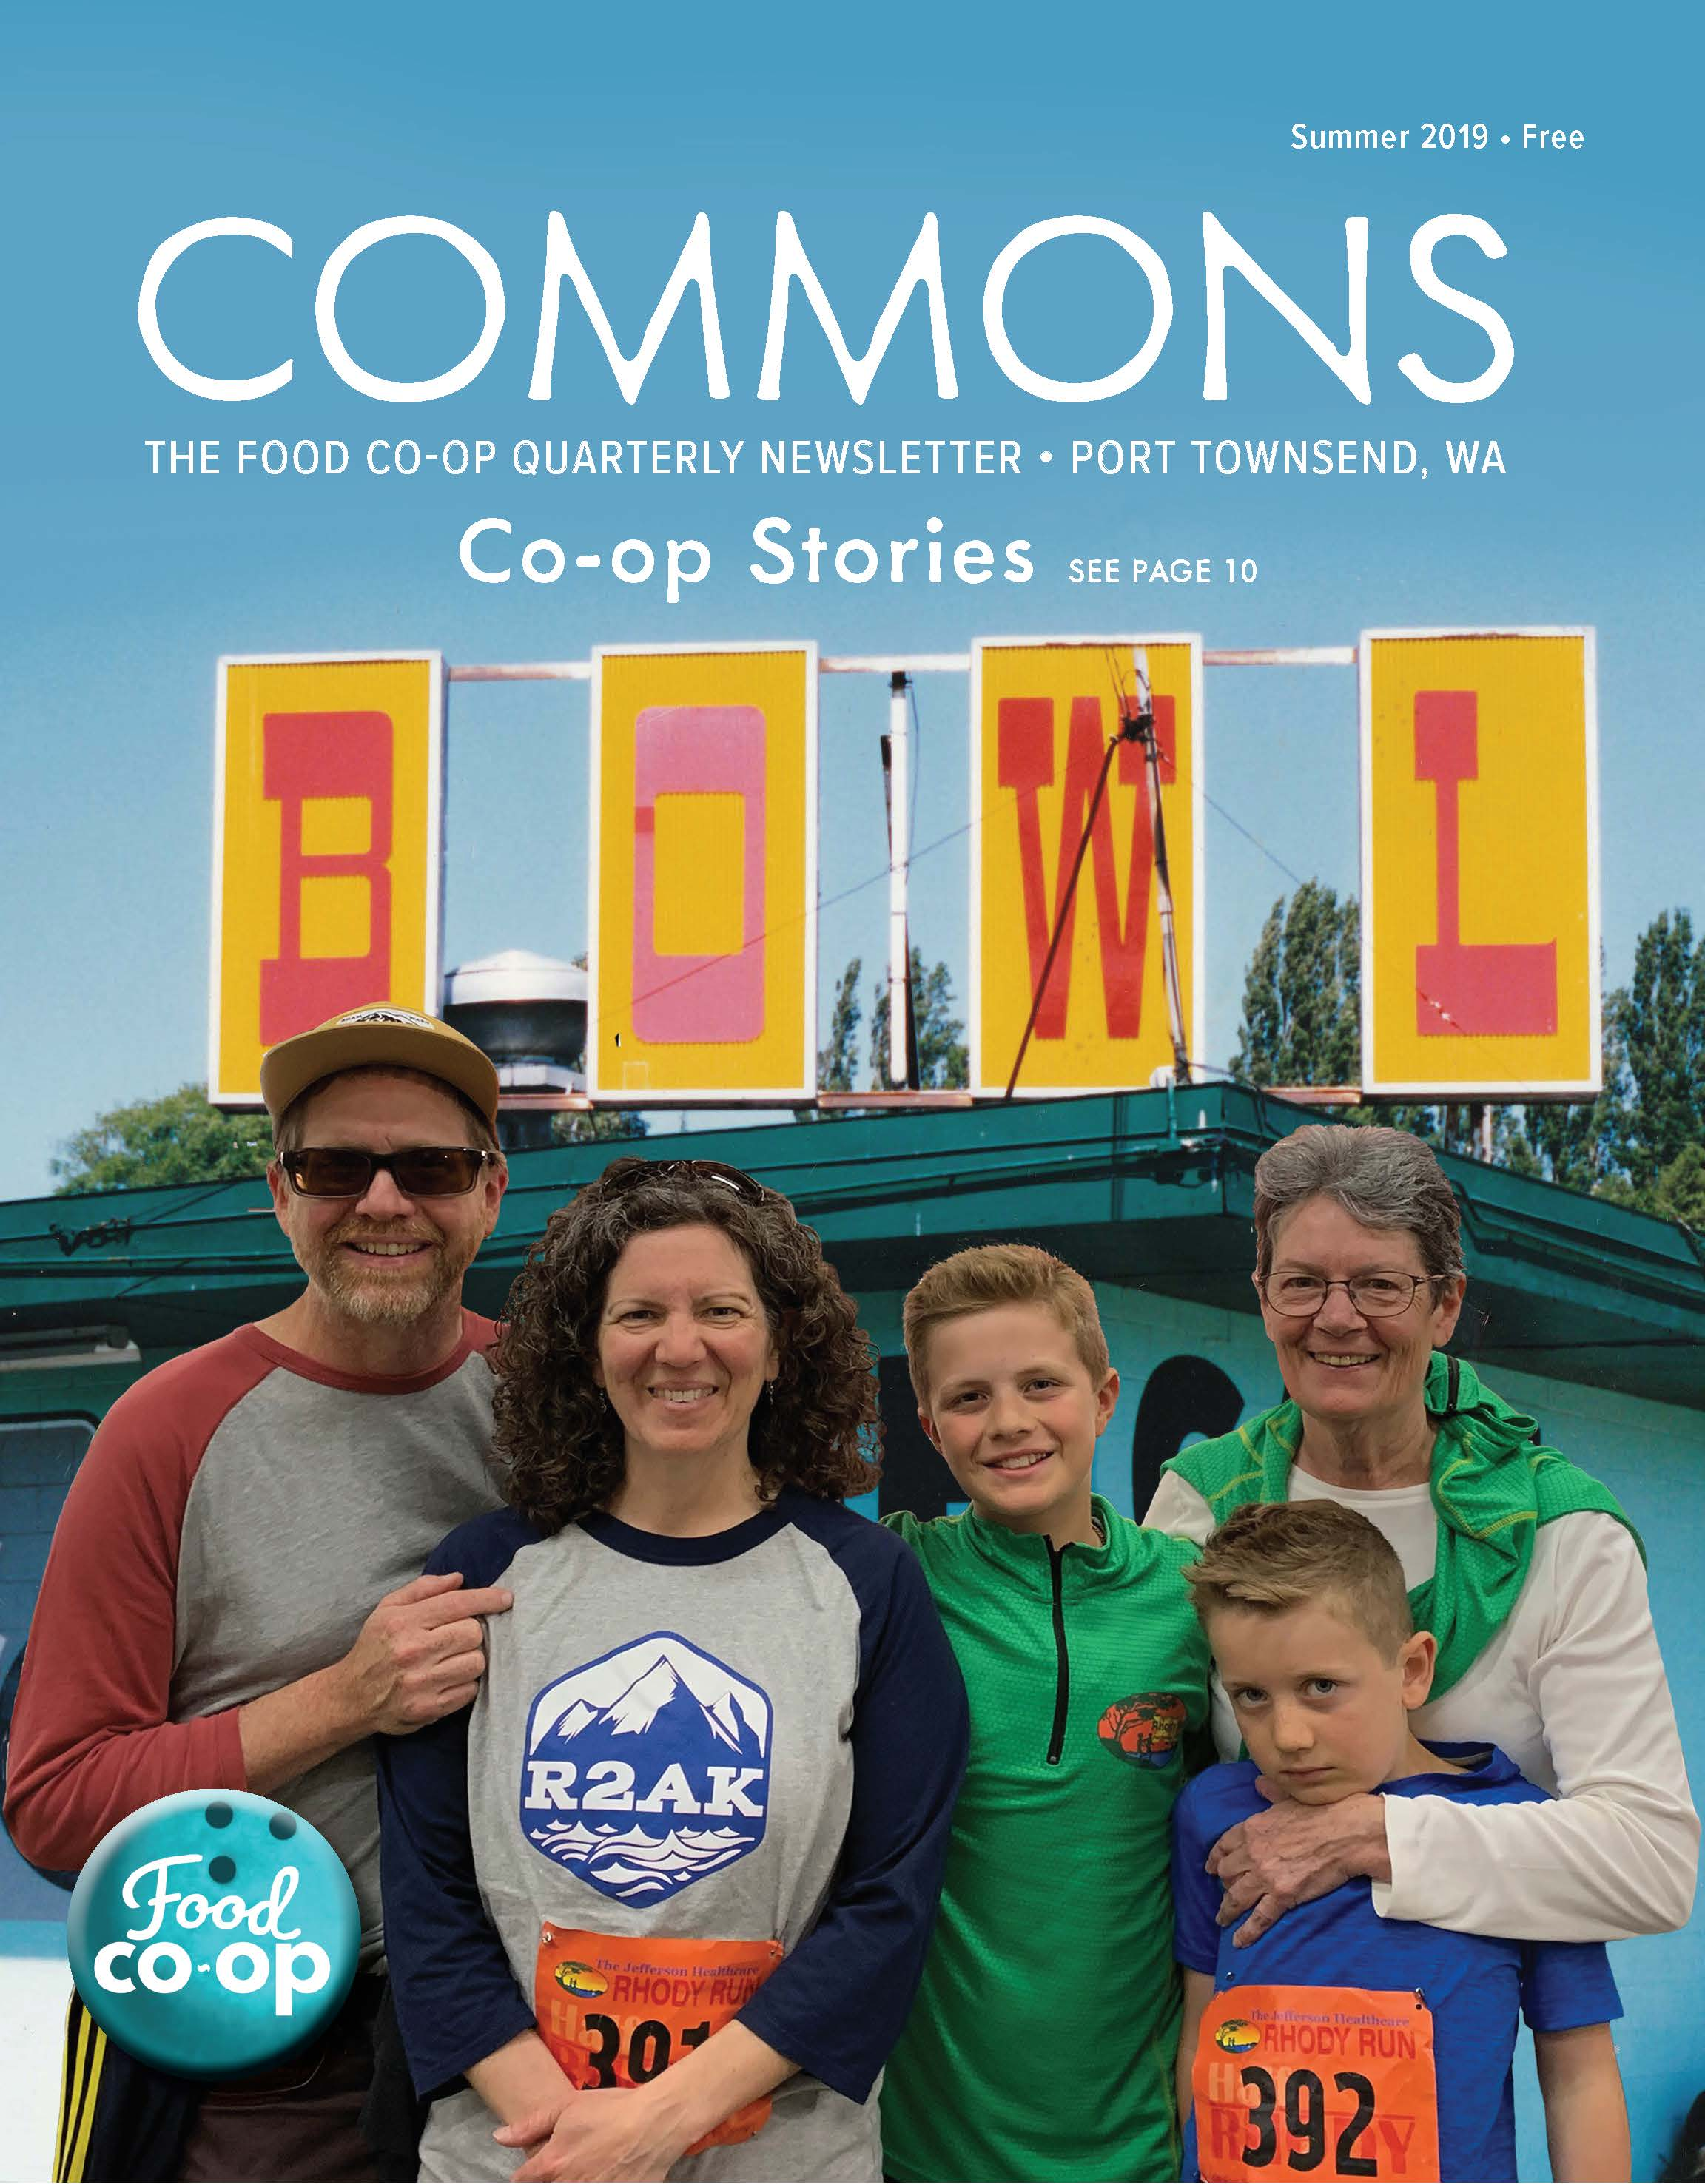 COMMONS Summer 2019_01.jpg